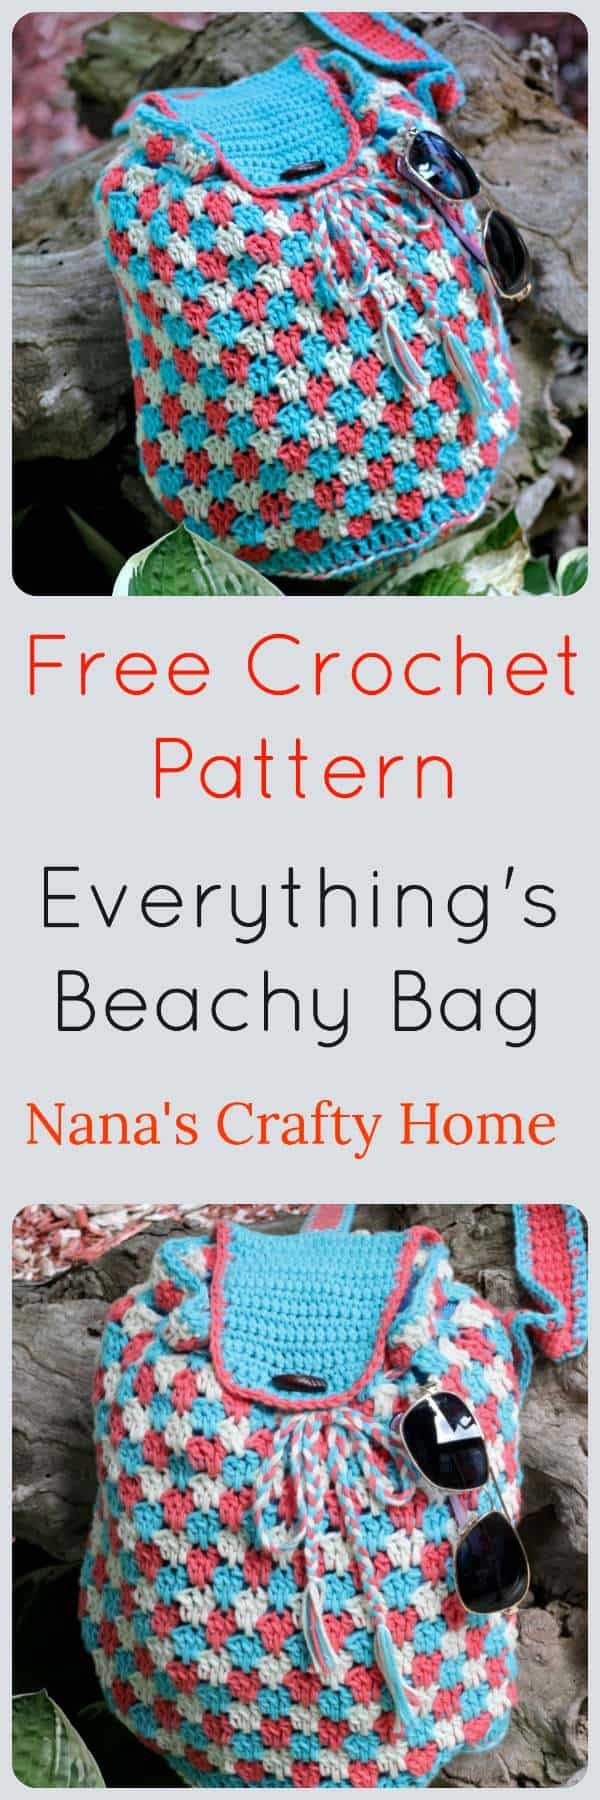 Everything's Beachy Bag Free Crochet Pattern made with I Love This Cotton! yarn sling crossbody bag